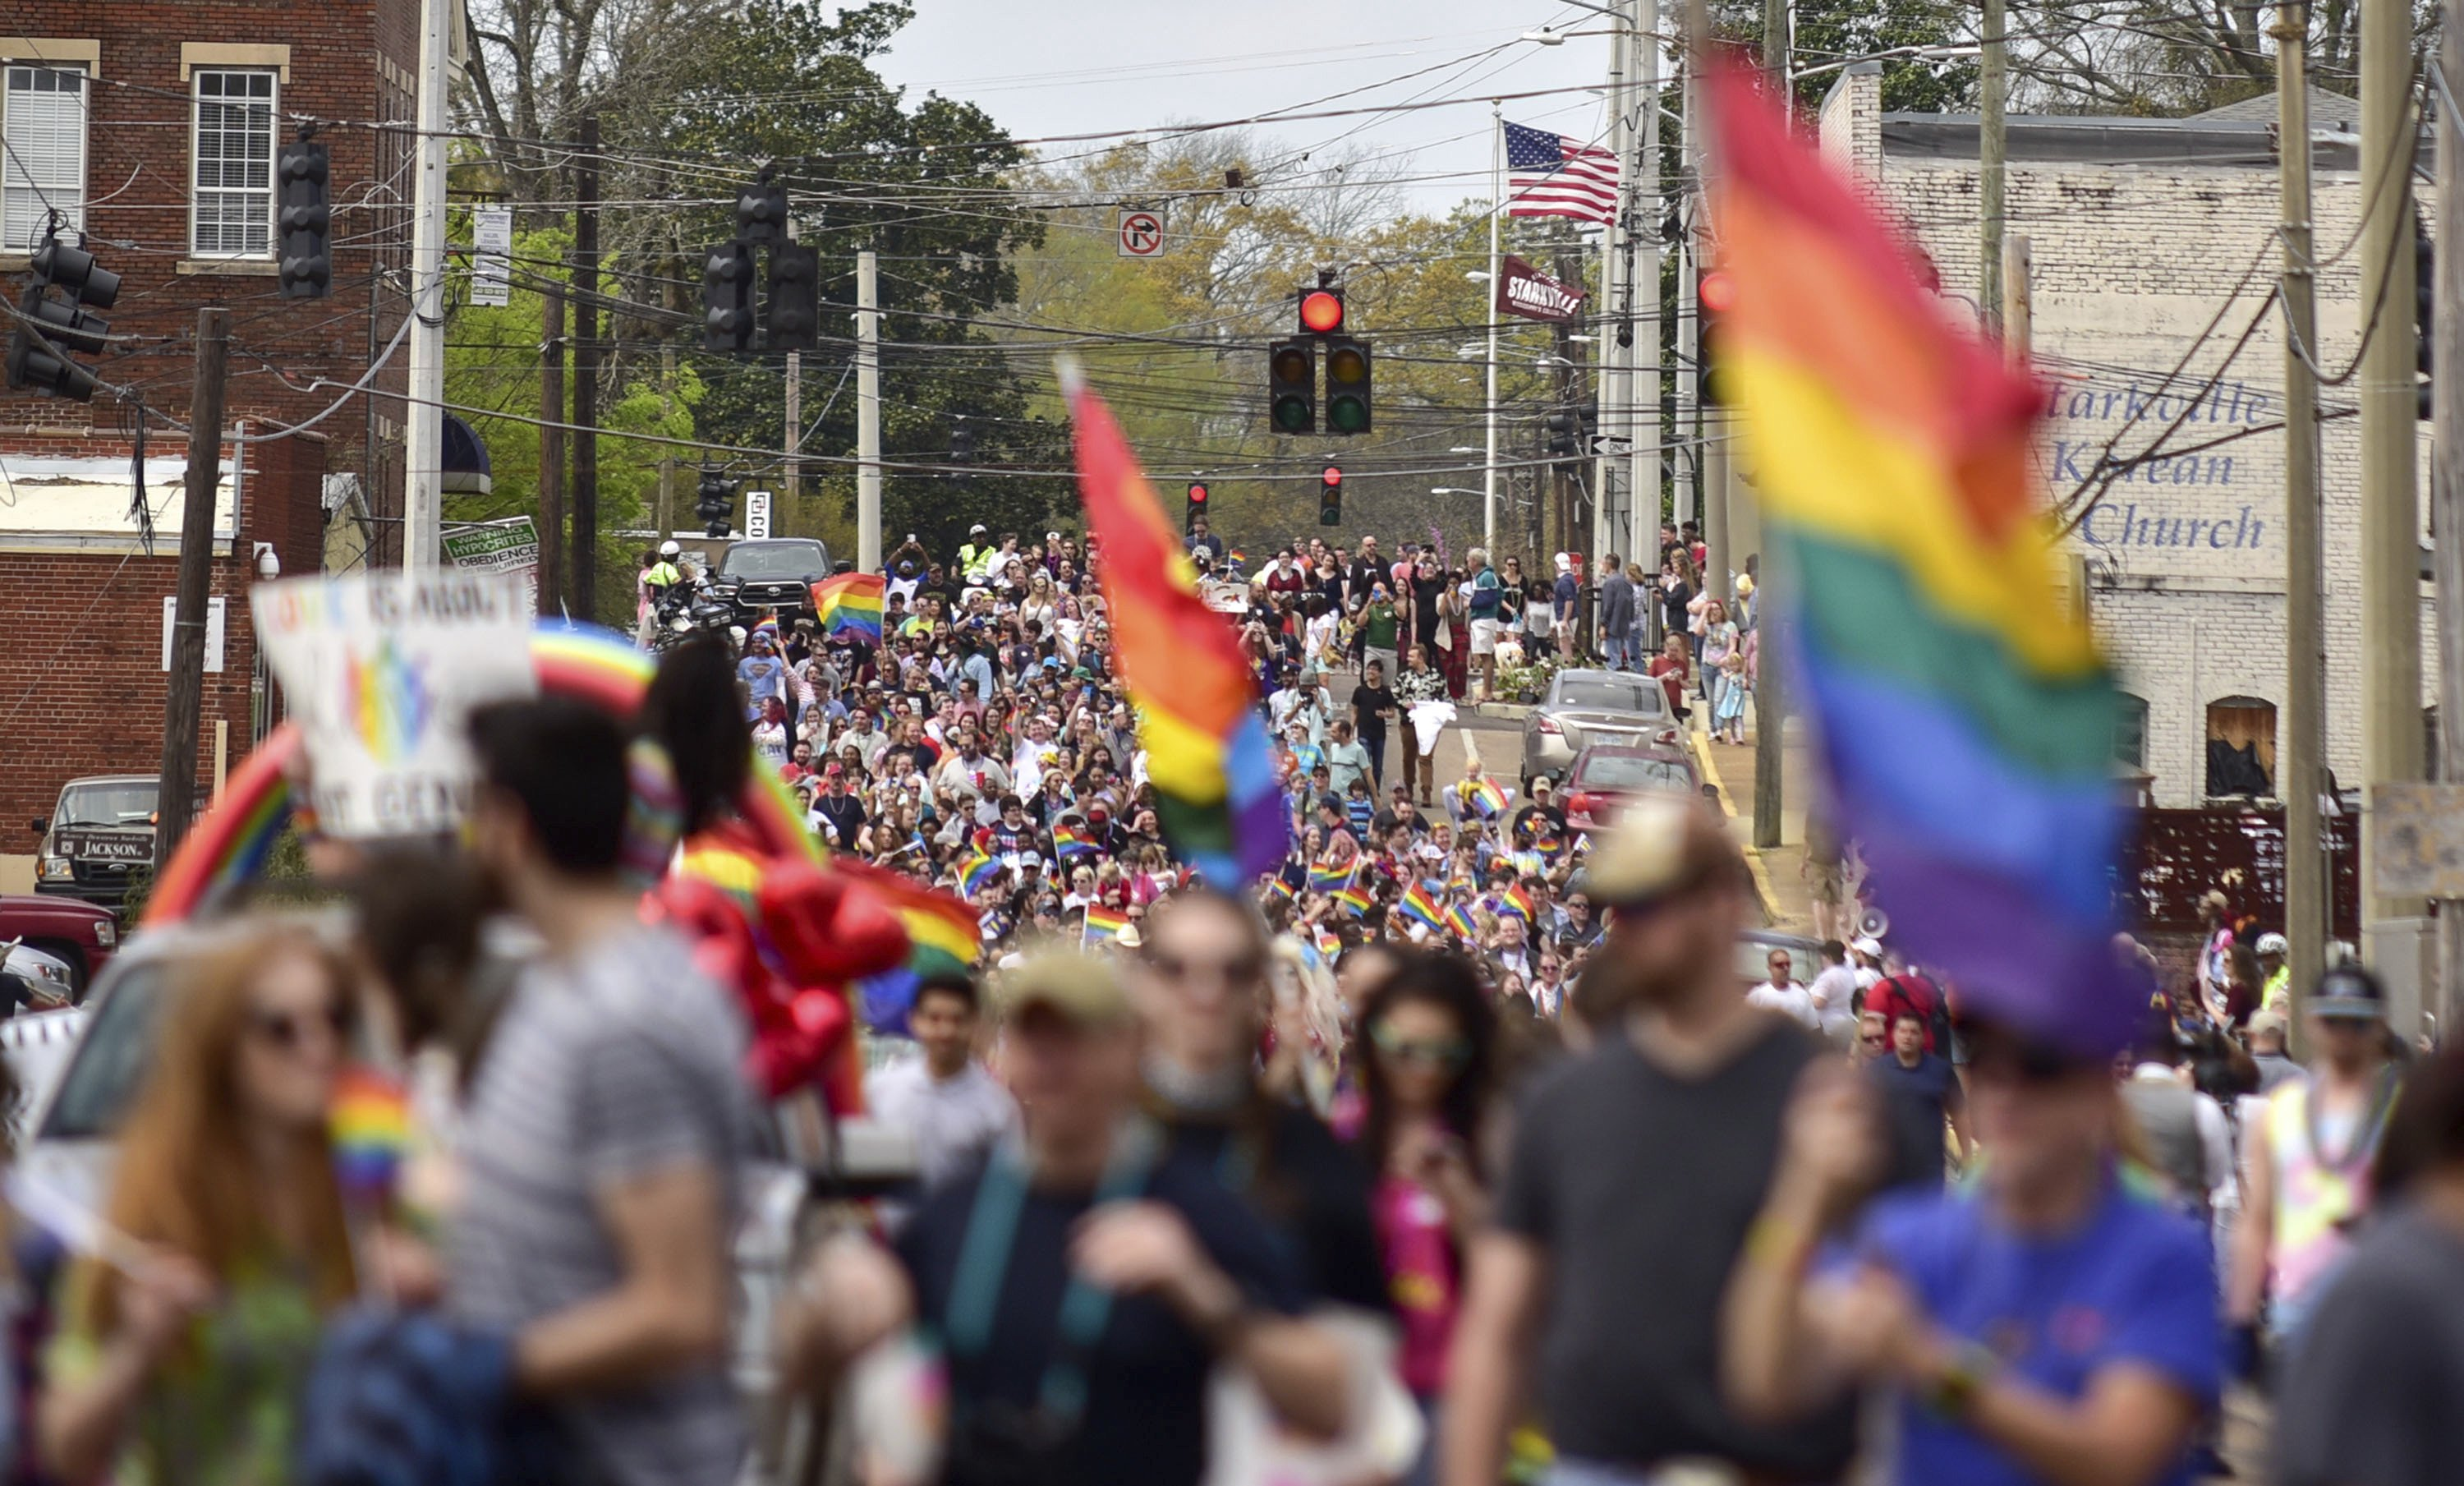 Gay pride parade held in Mississippi city that initially denied permit